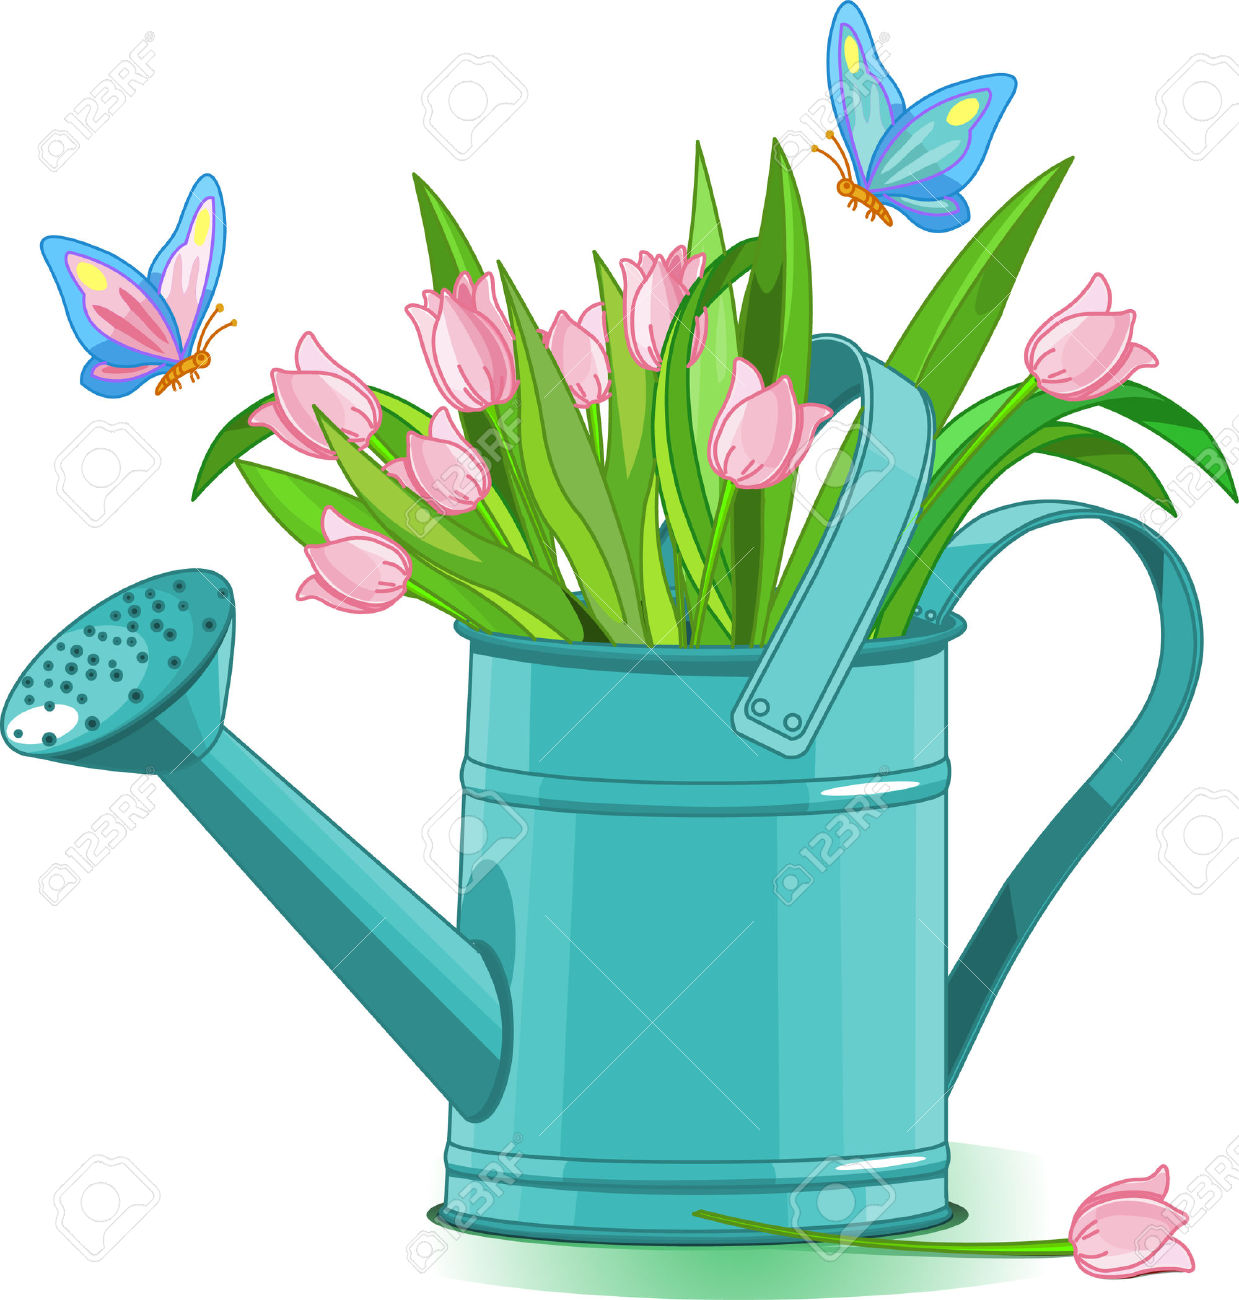 Watering Can clipart sprinkling Watering Can Clip Watering Can